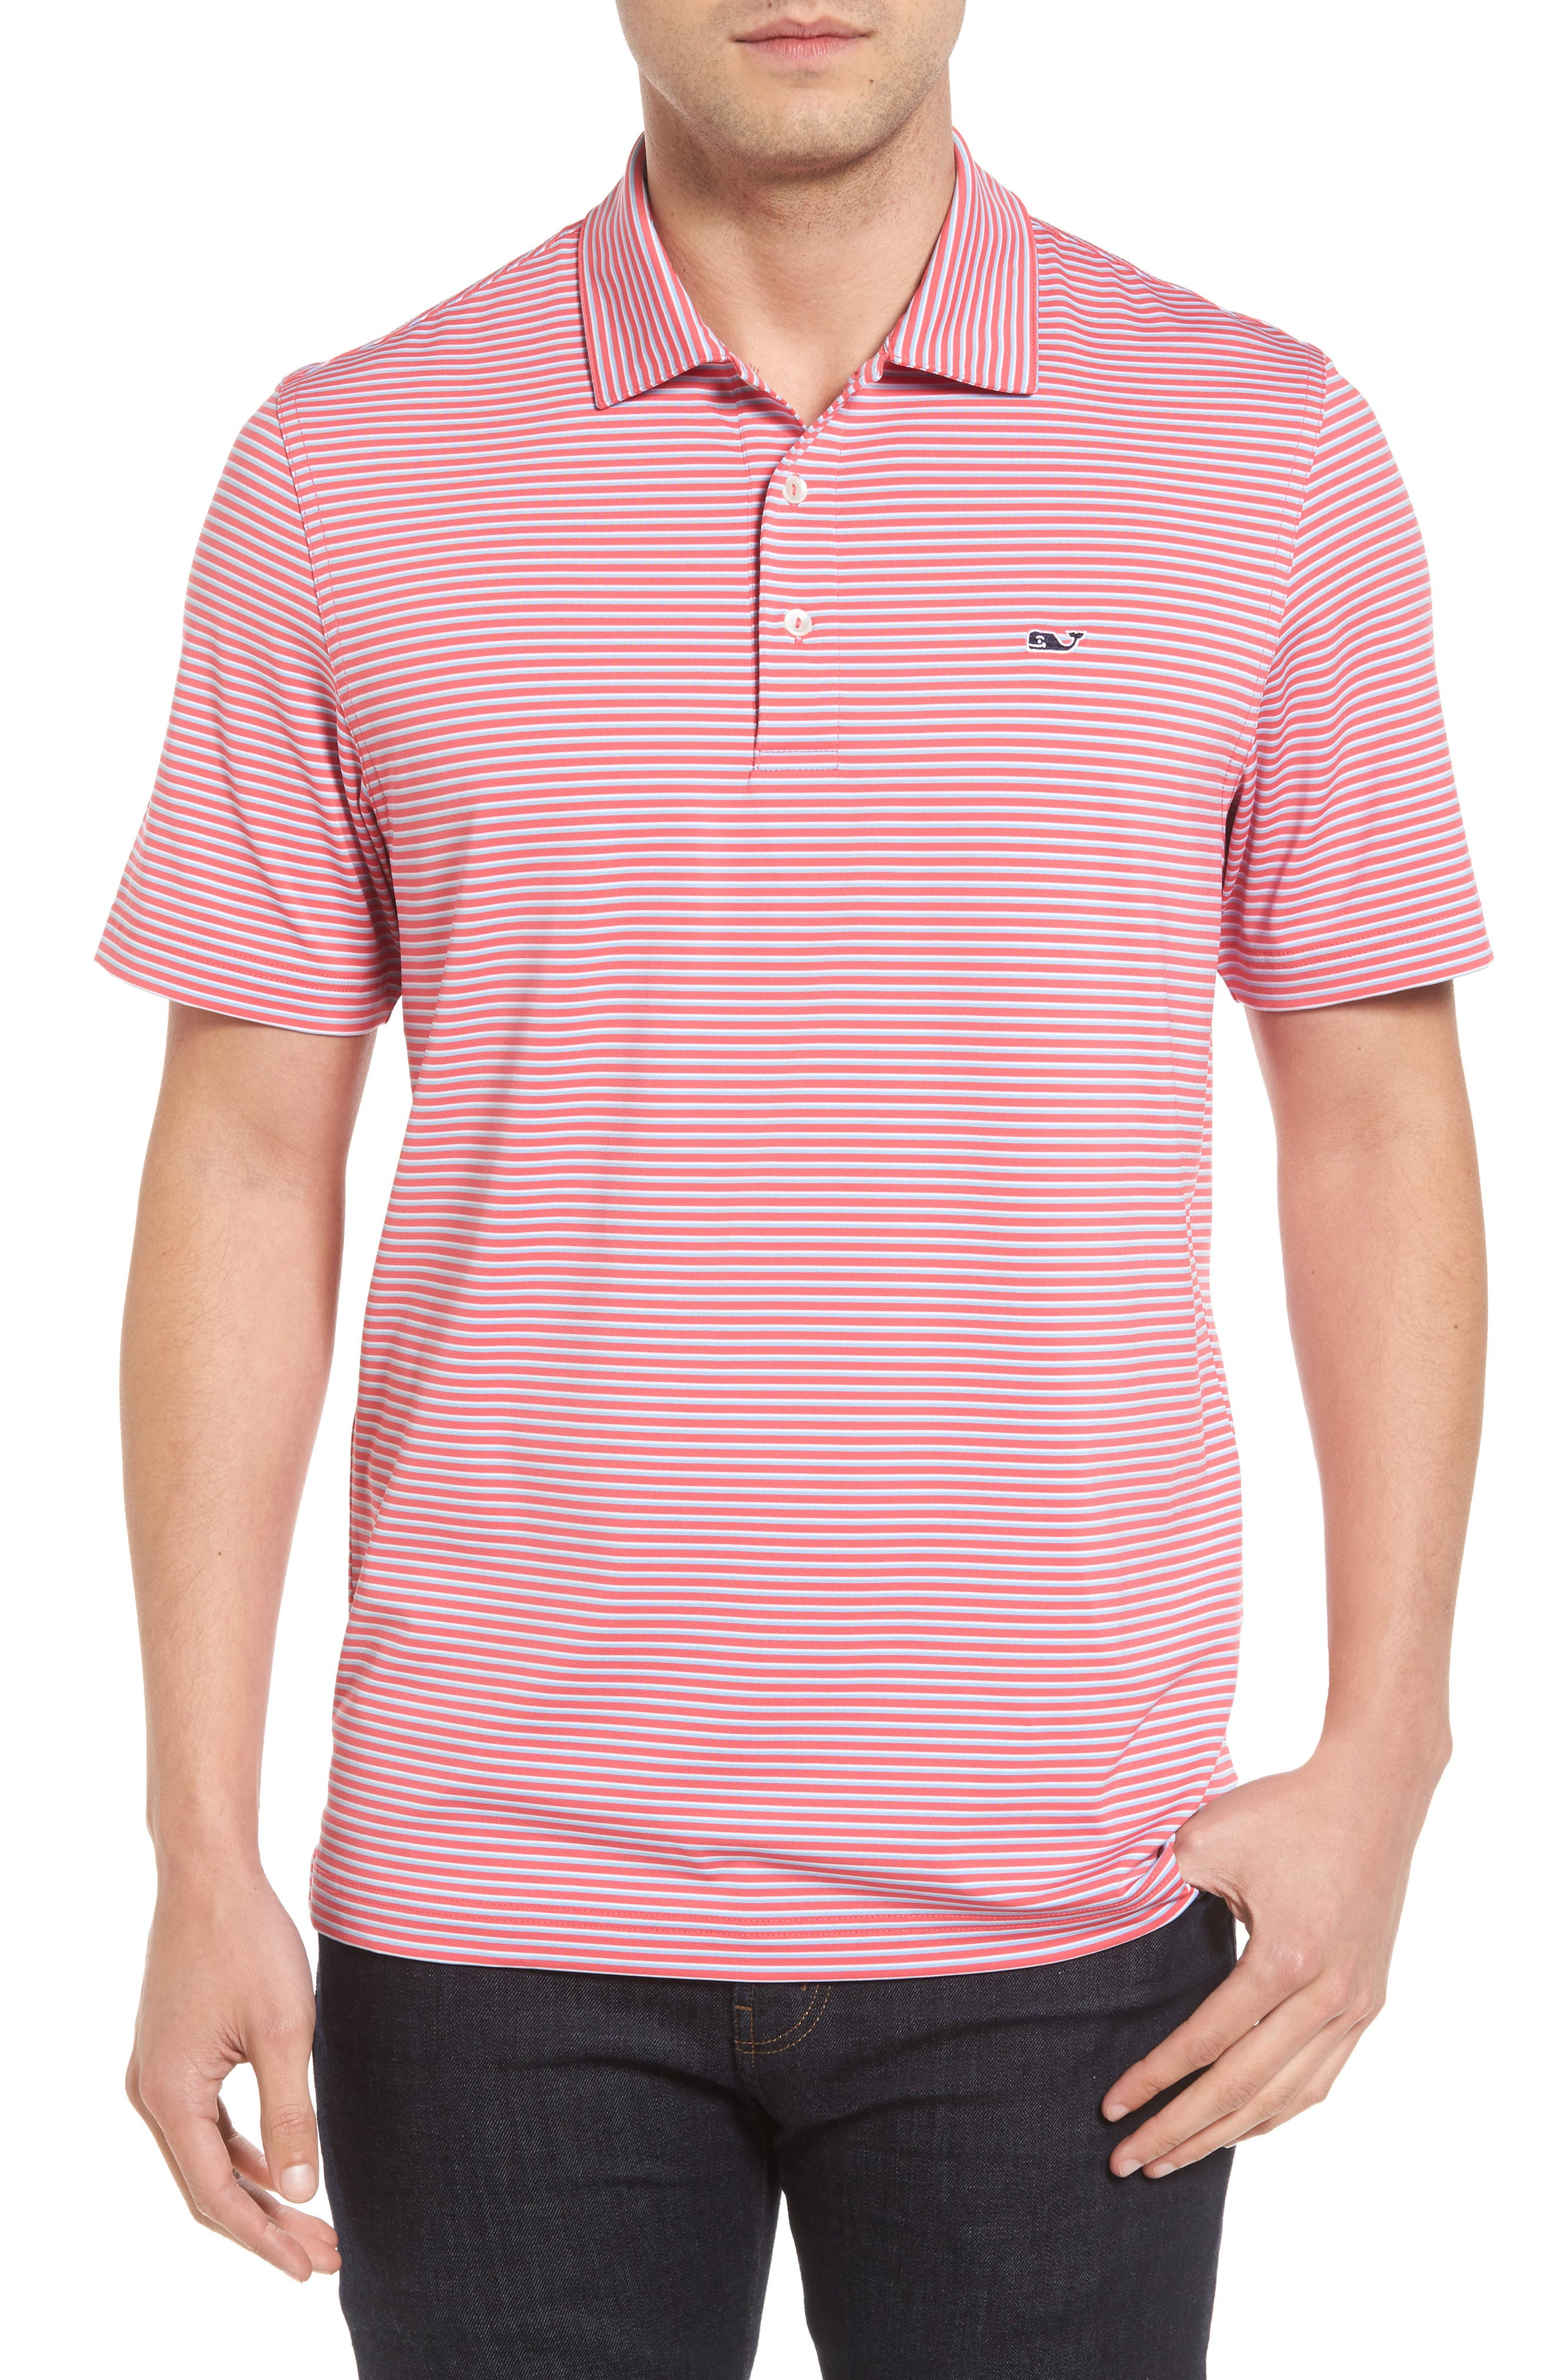 Vineyard Vines Stripe Golf Polo